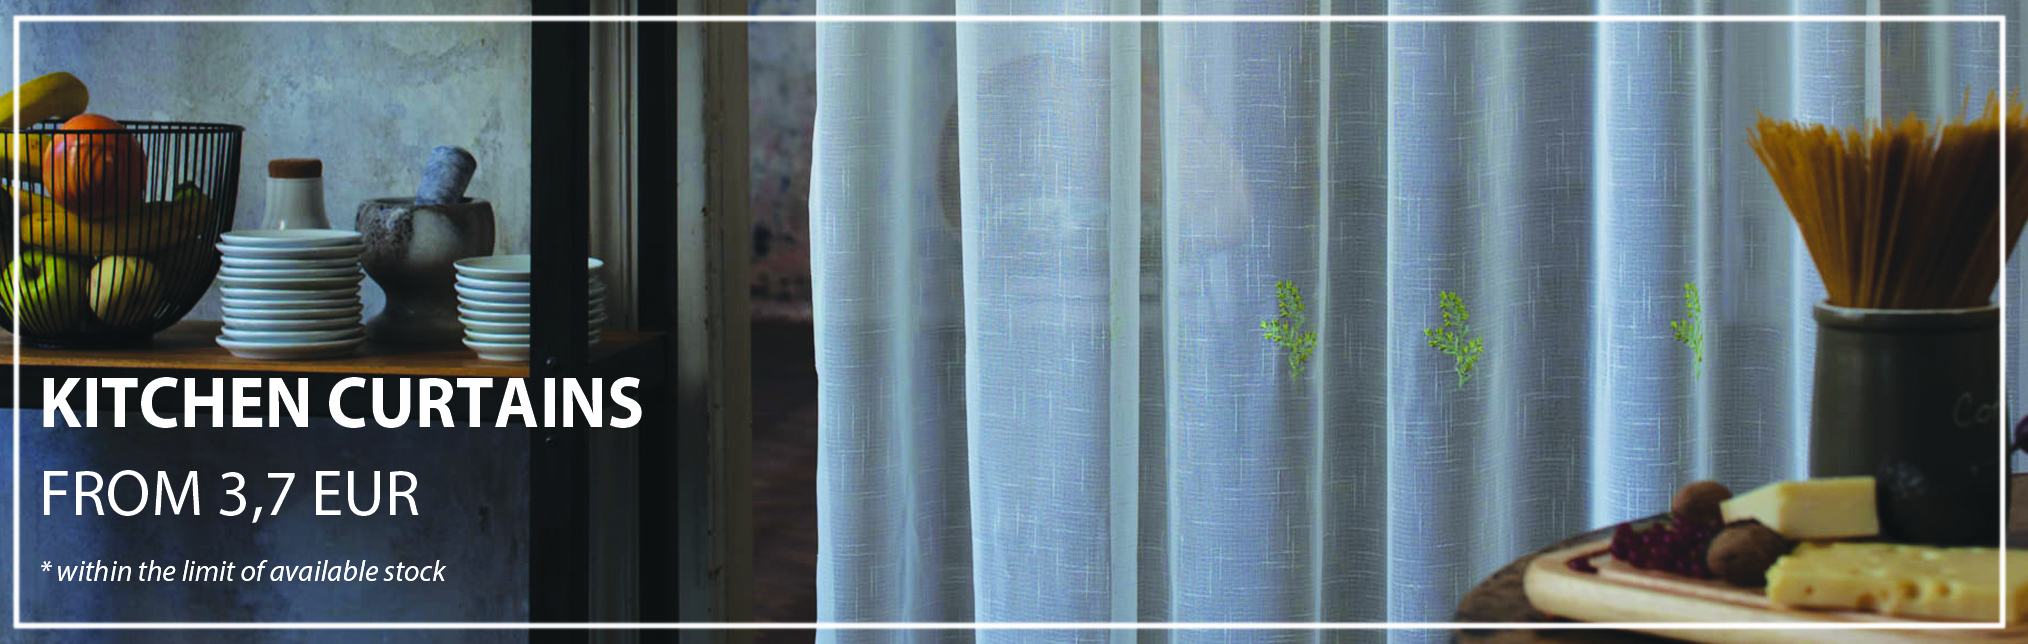 August Promotions:Kitchen Curtains